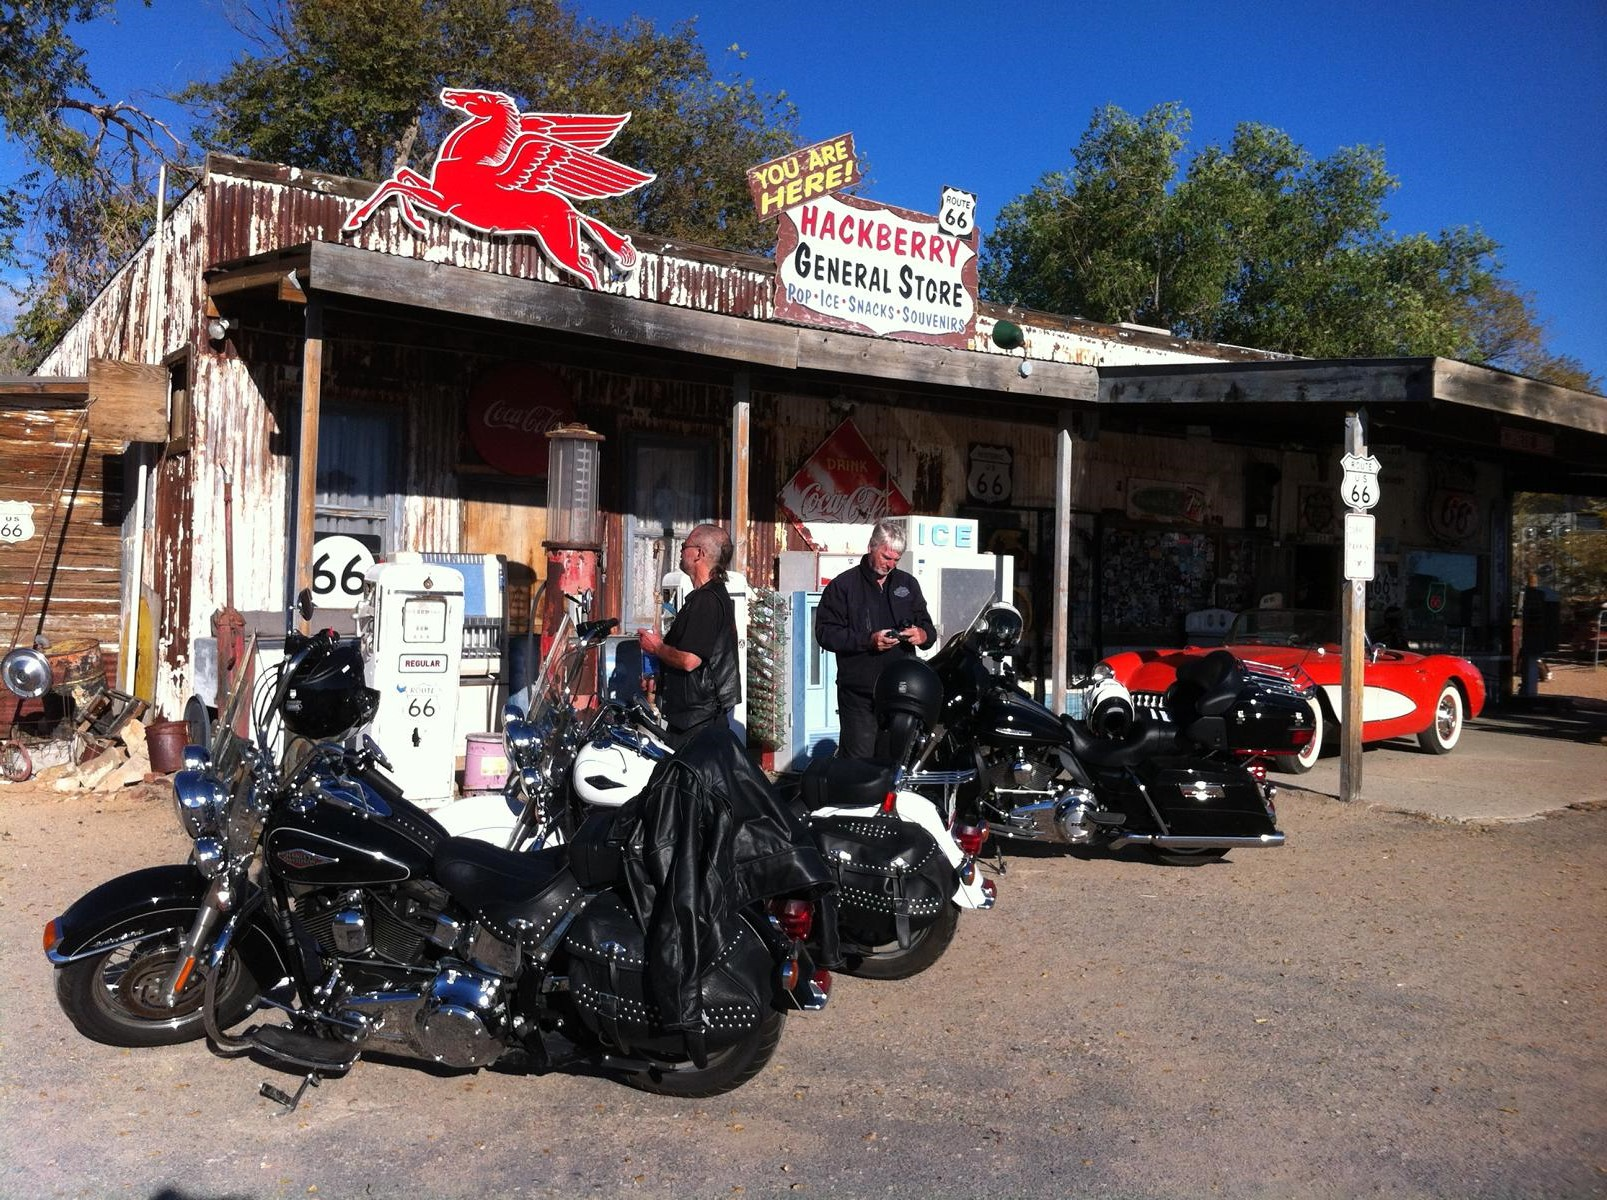 Hotels In Miami Harley Florida